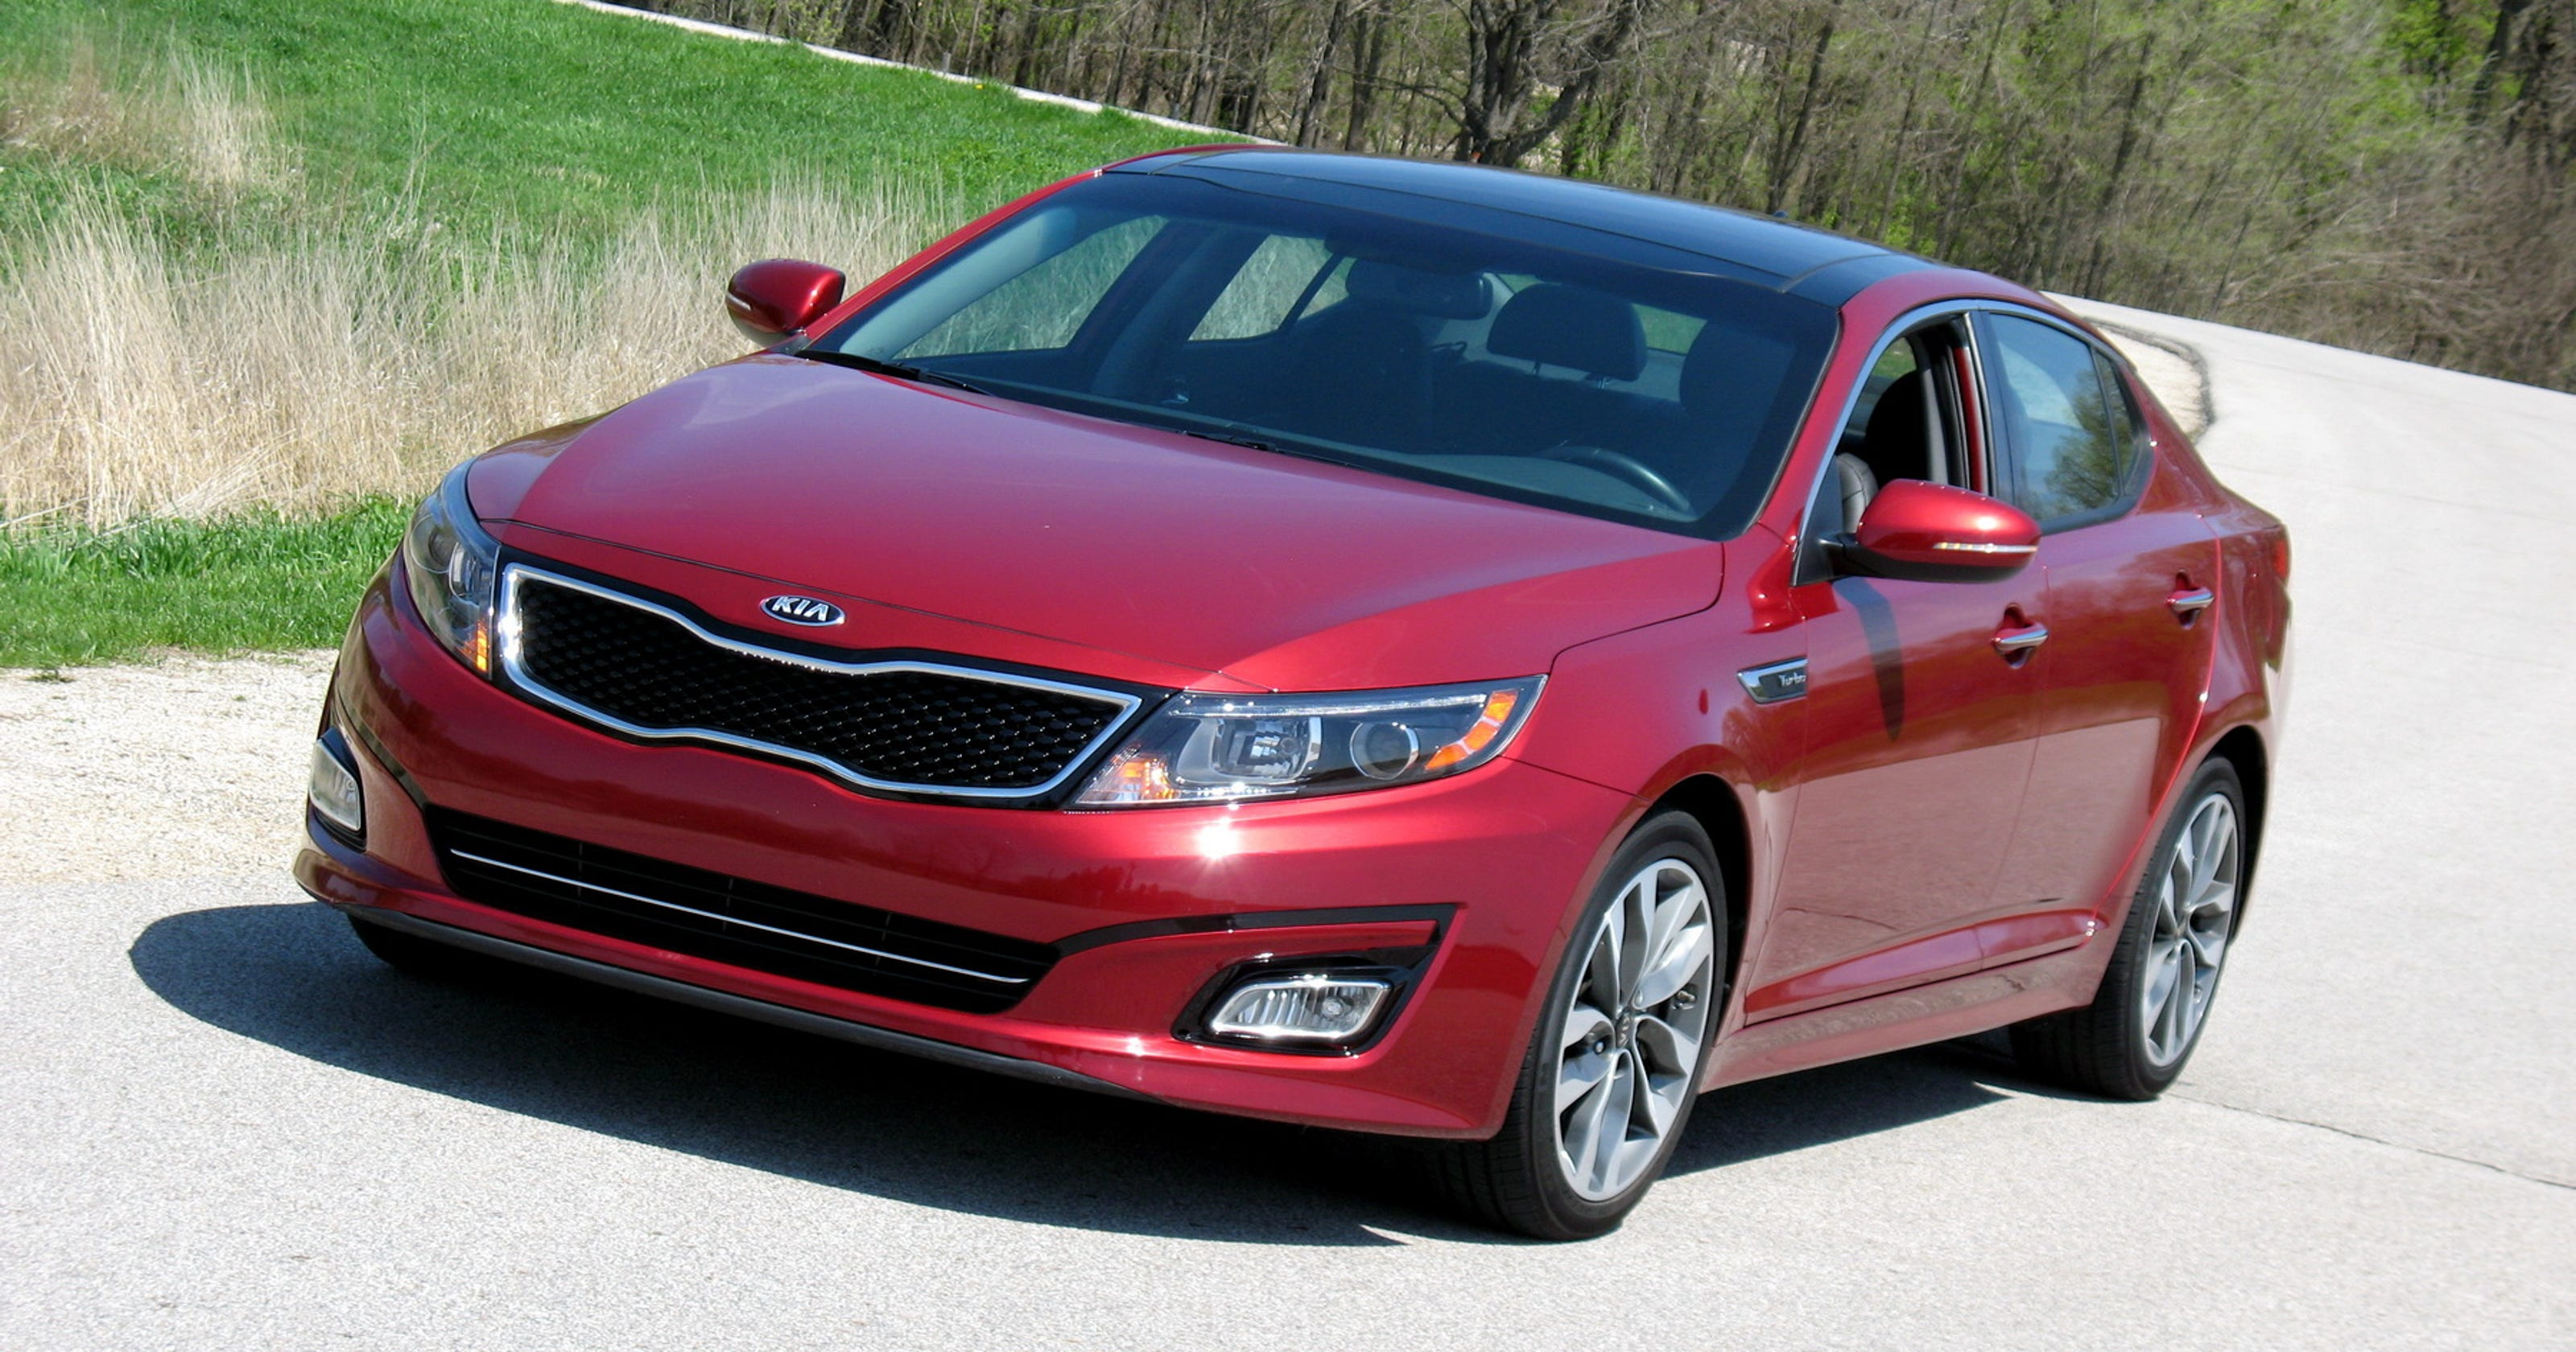 2015 Kia Optima Sedan Has Style Performance Remote Starter Kit